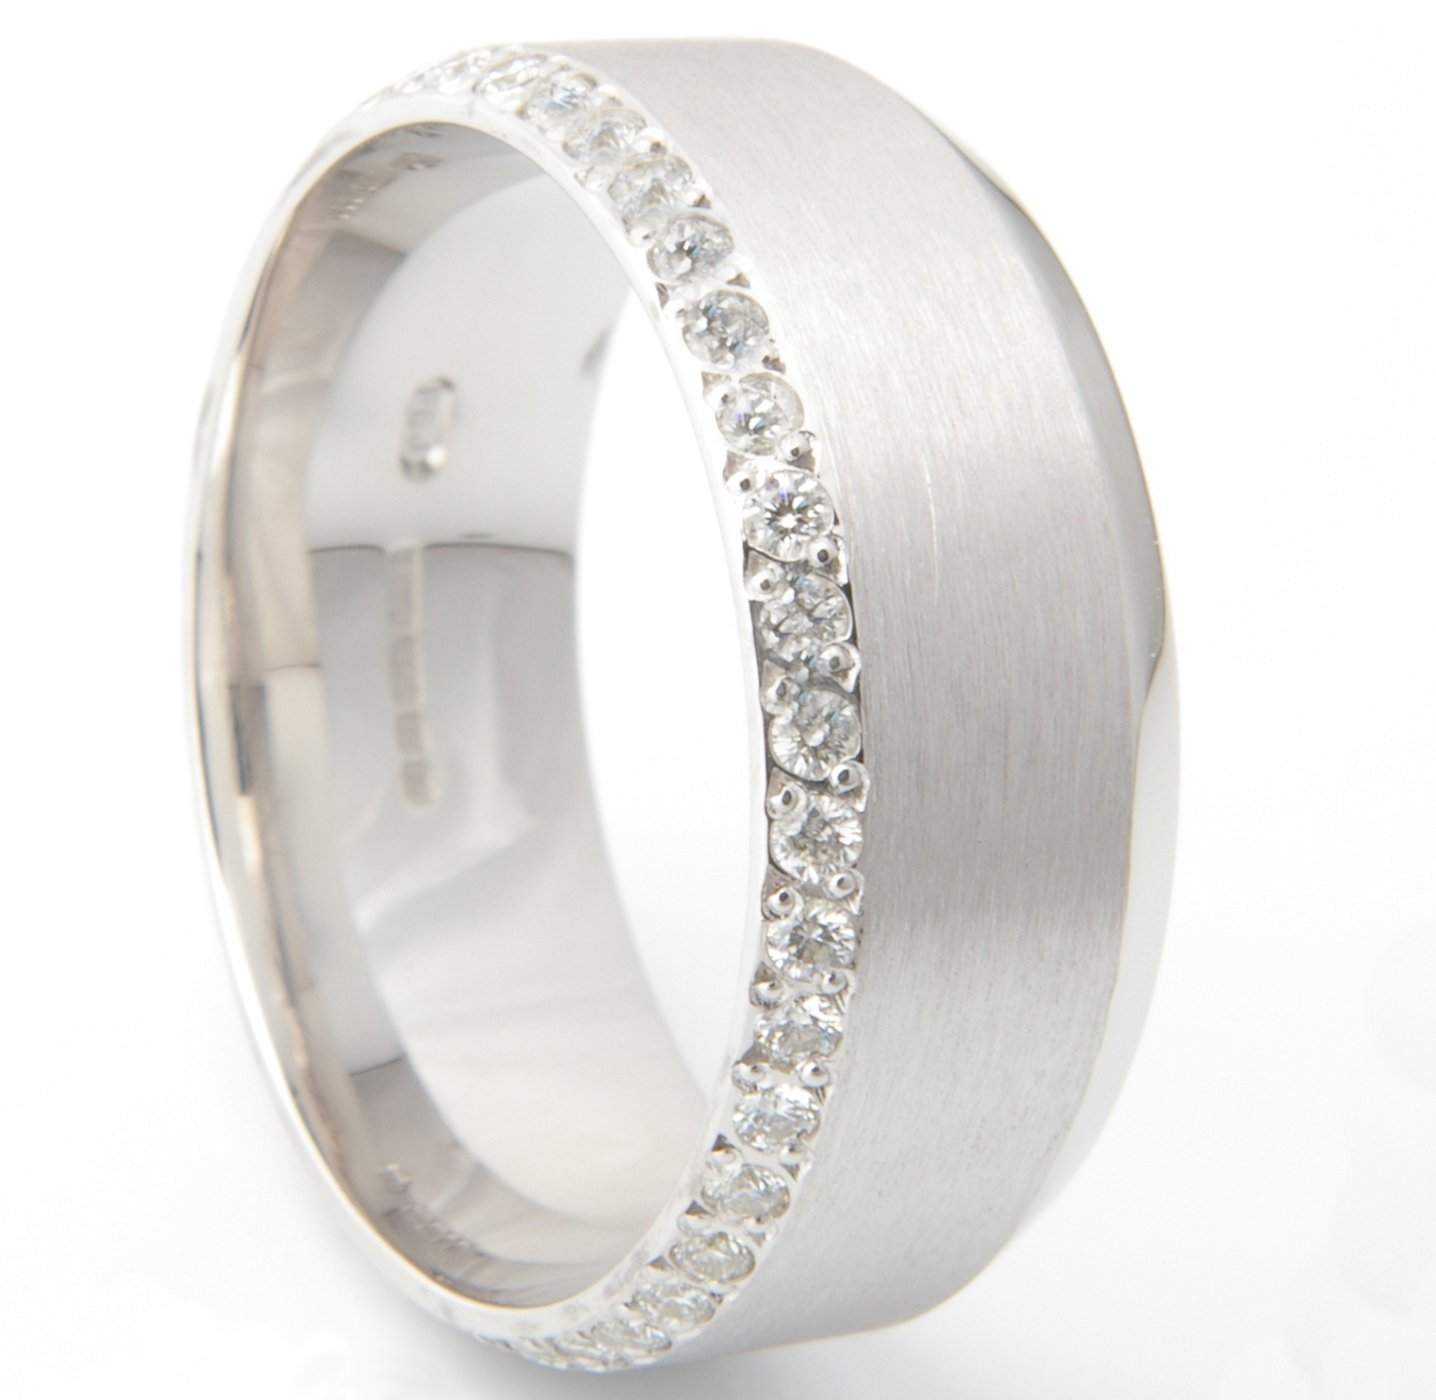 These BEAUTIFUL Wedding bands,